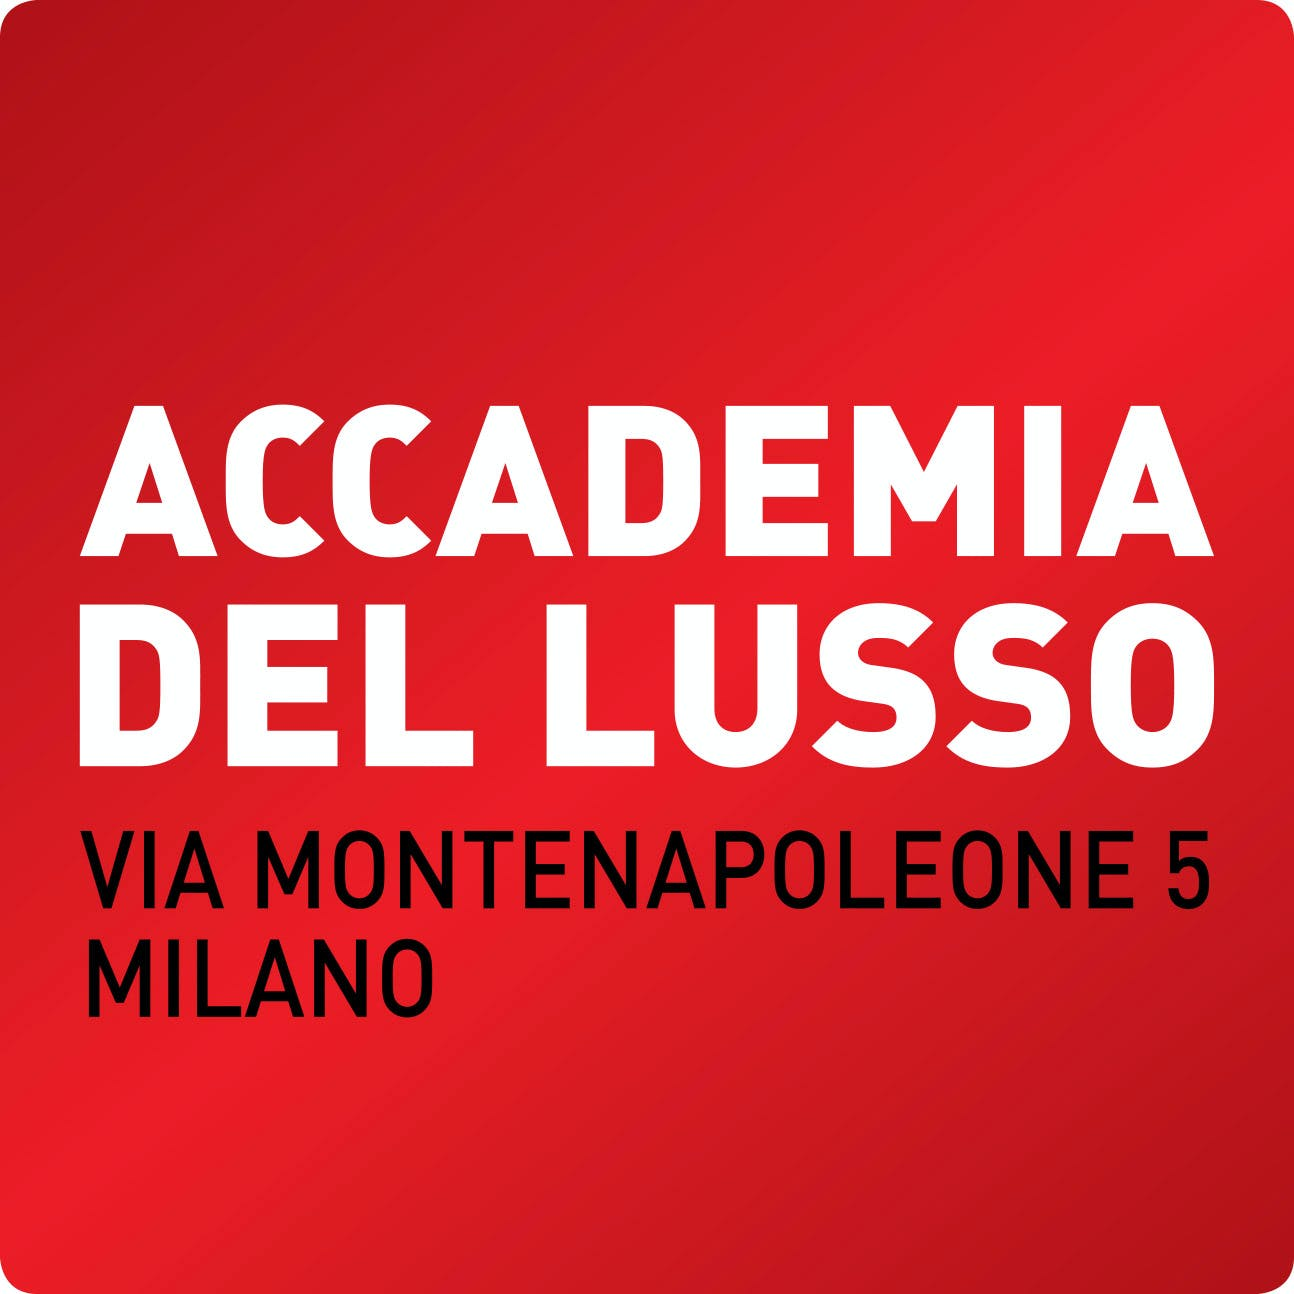 Accademia Del Lusso University Info Find Your Master S Mastersportal Com